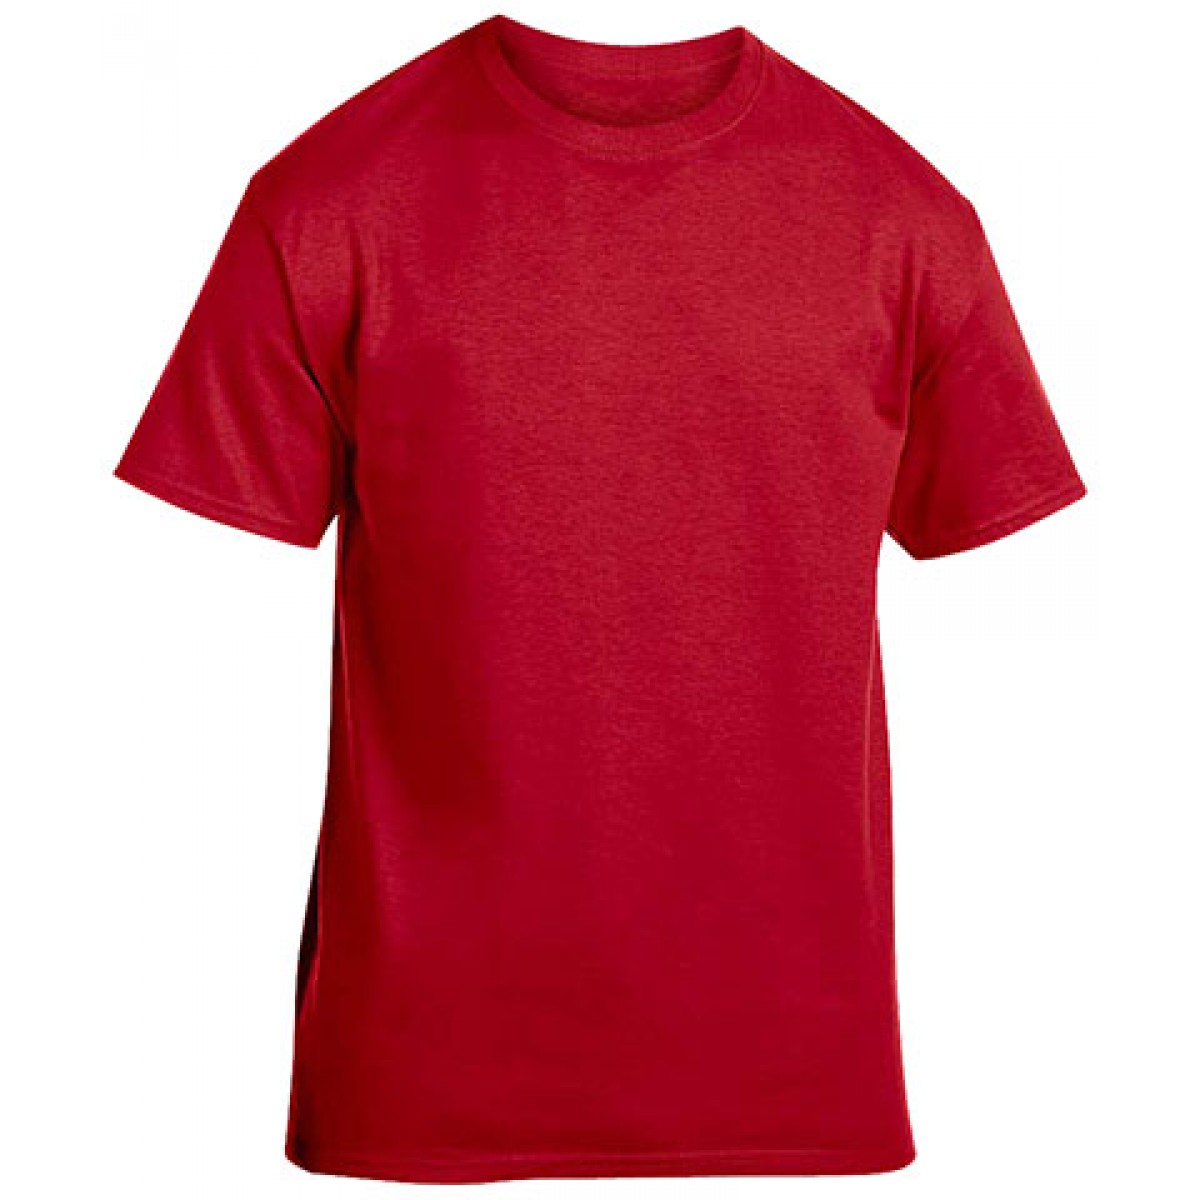 Heavy Cotton Activewear T-Shirt-Red-3XL